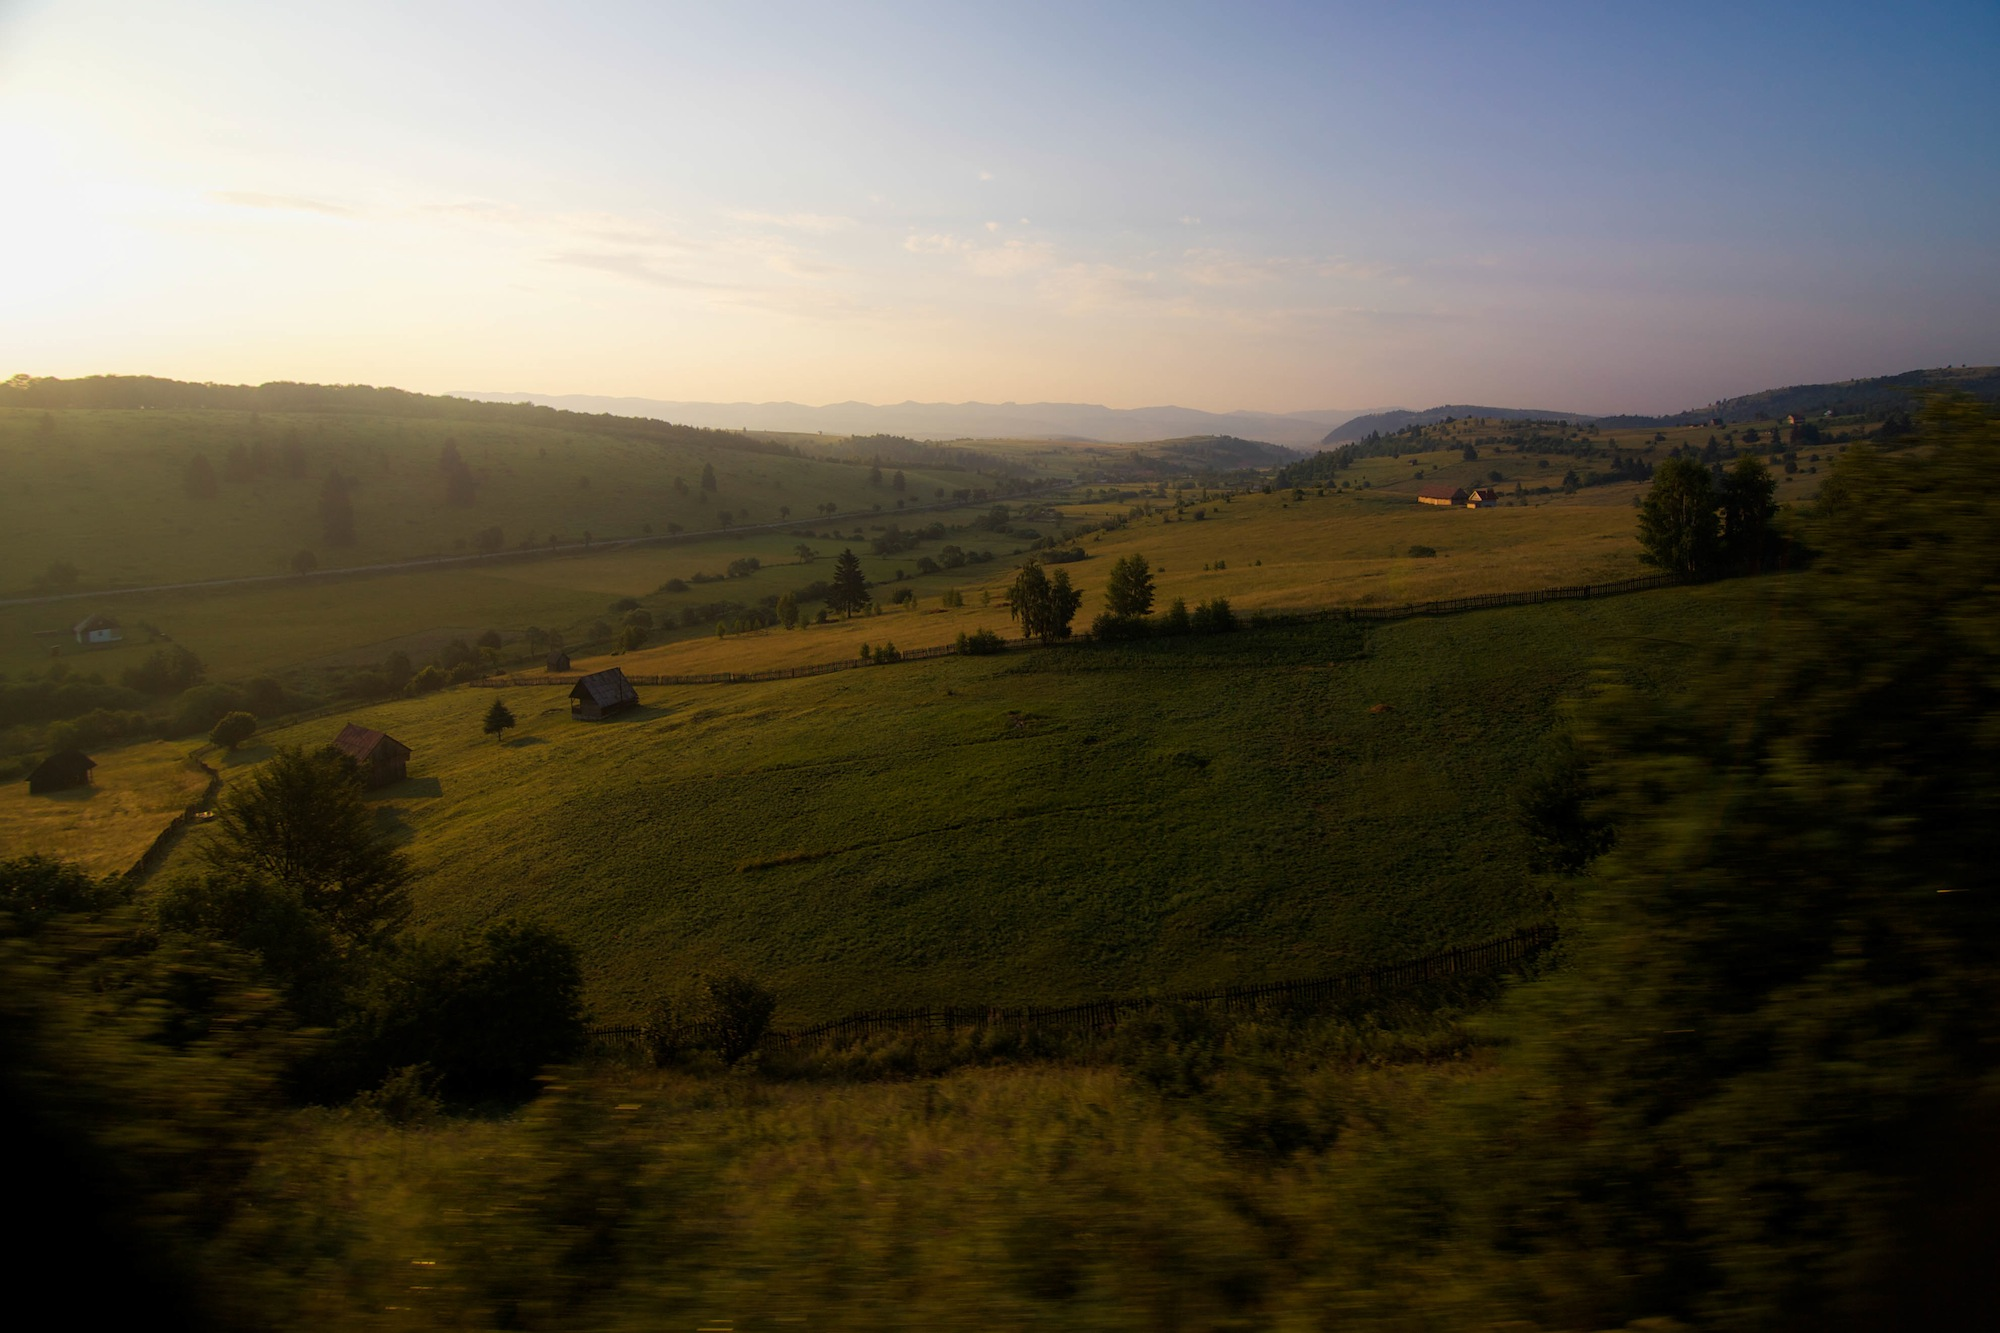 Transylvanian hills from the train